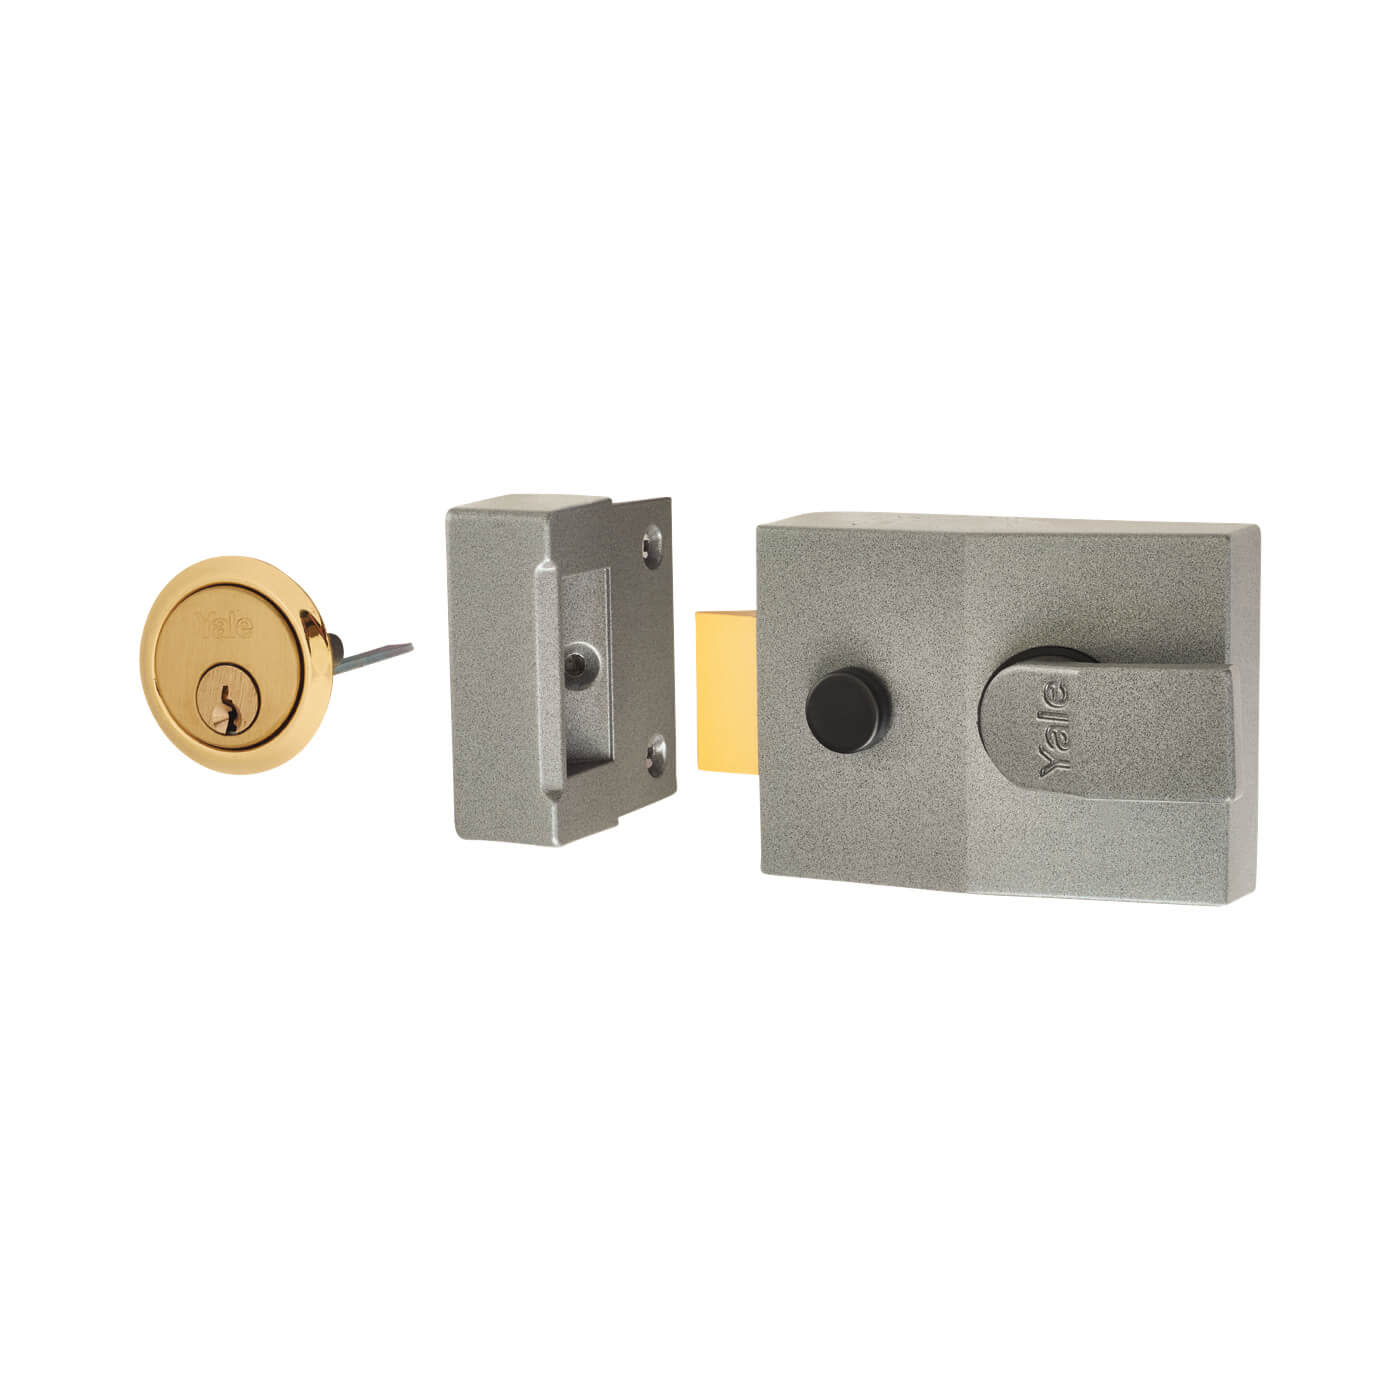 Yale® 89 Double Locking Nightlatch - 60mm Backset - Grey Case/Brass Cylinder)